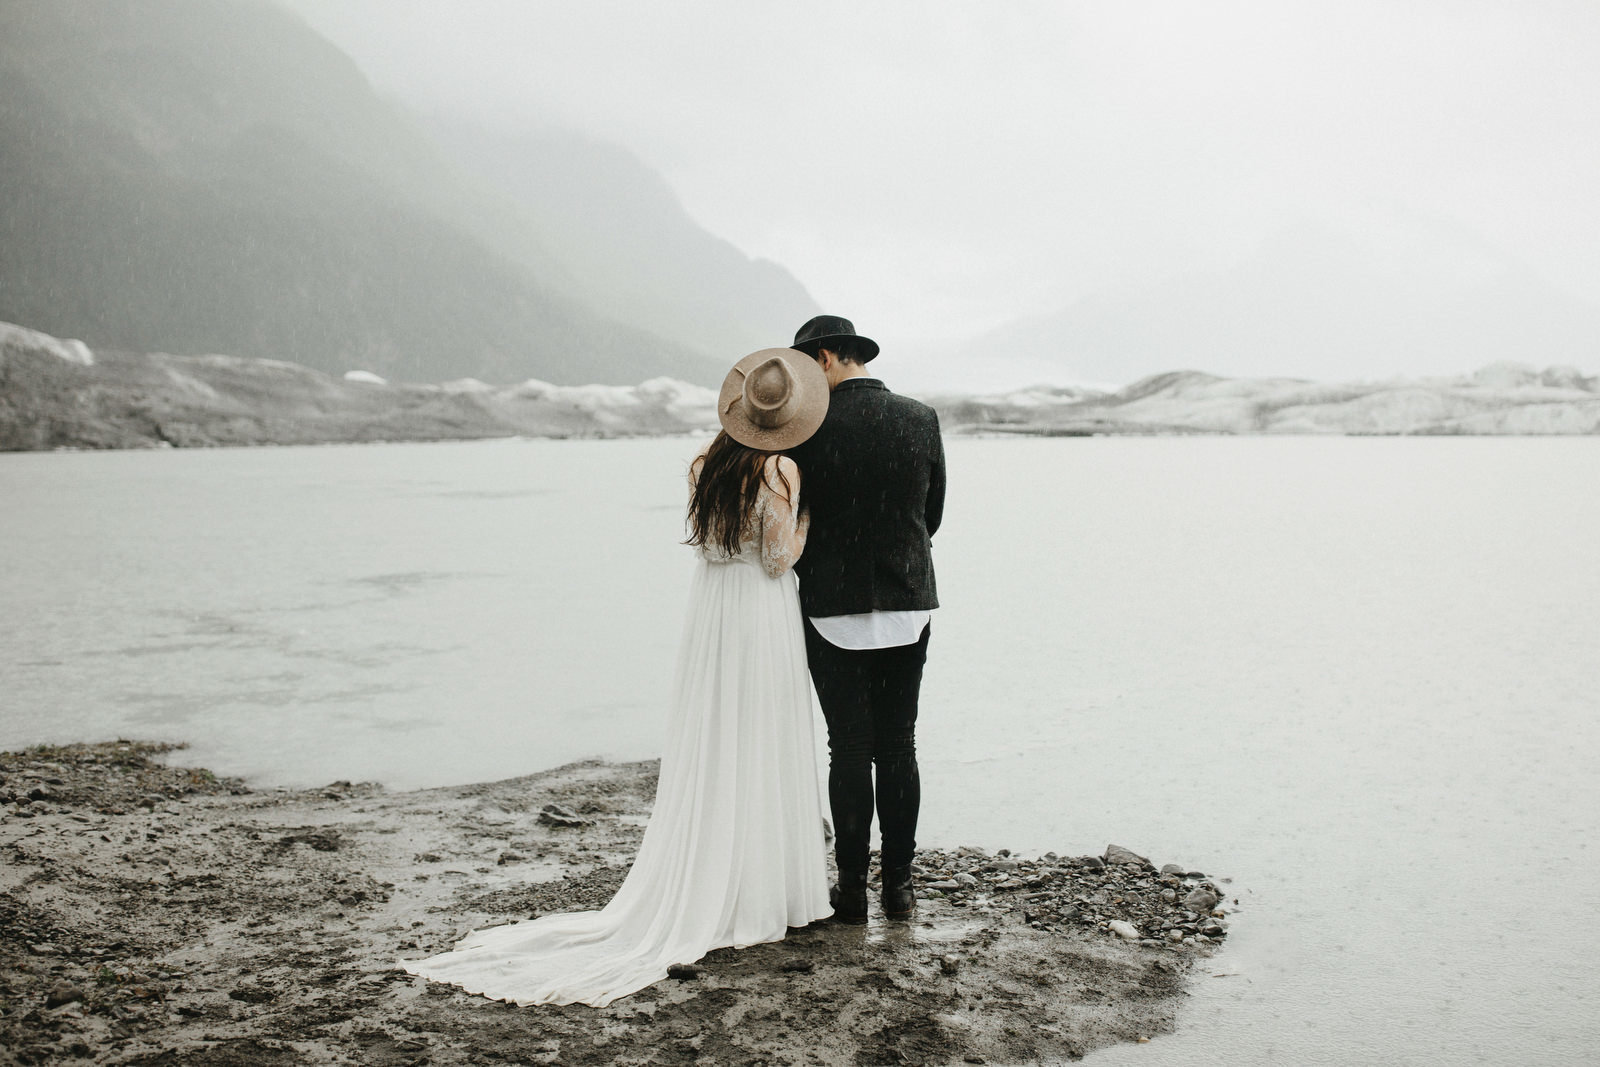 athena-and-camron-alaska-elopement-wedding-inspiration-india-earl-athena-grace-glacier-lagoon-wedding96